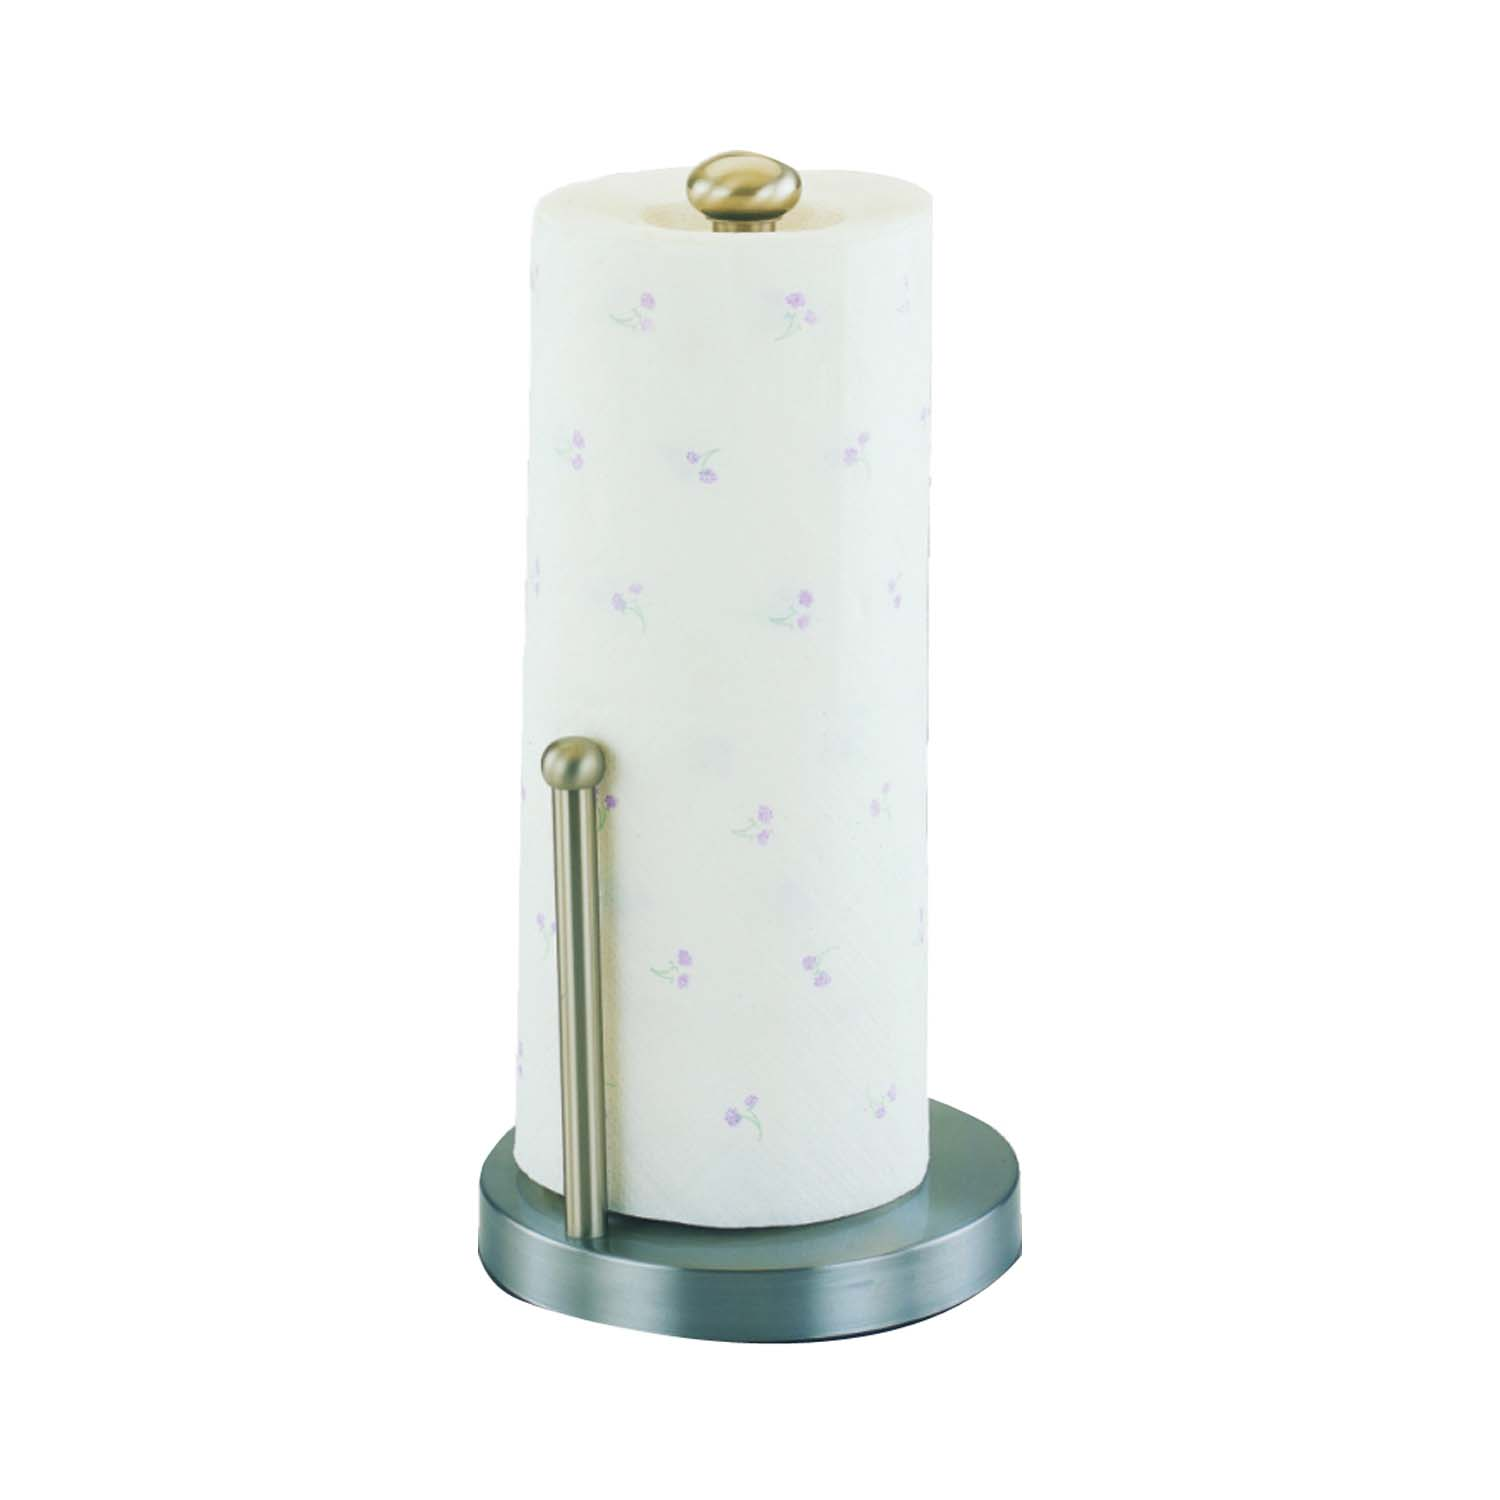 Picture of Simple Spaces L1070-26-02-M Paper Towel Holder, 6-1/2 in Dia Rod, 13-1/2 in L Rod, Brass/Stainless Steel, Satin